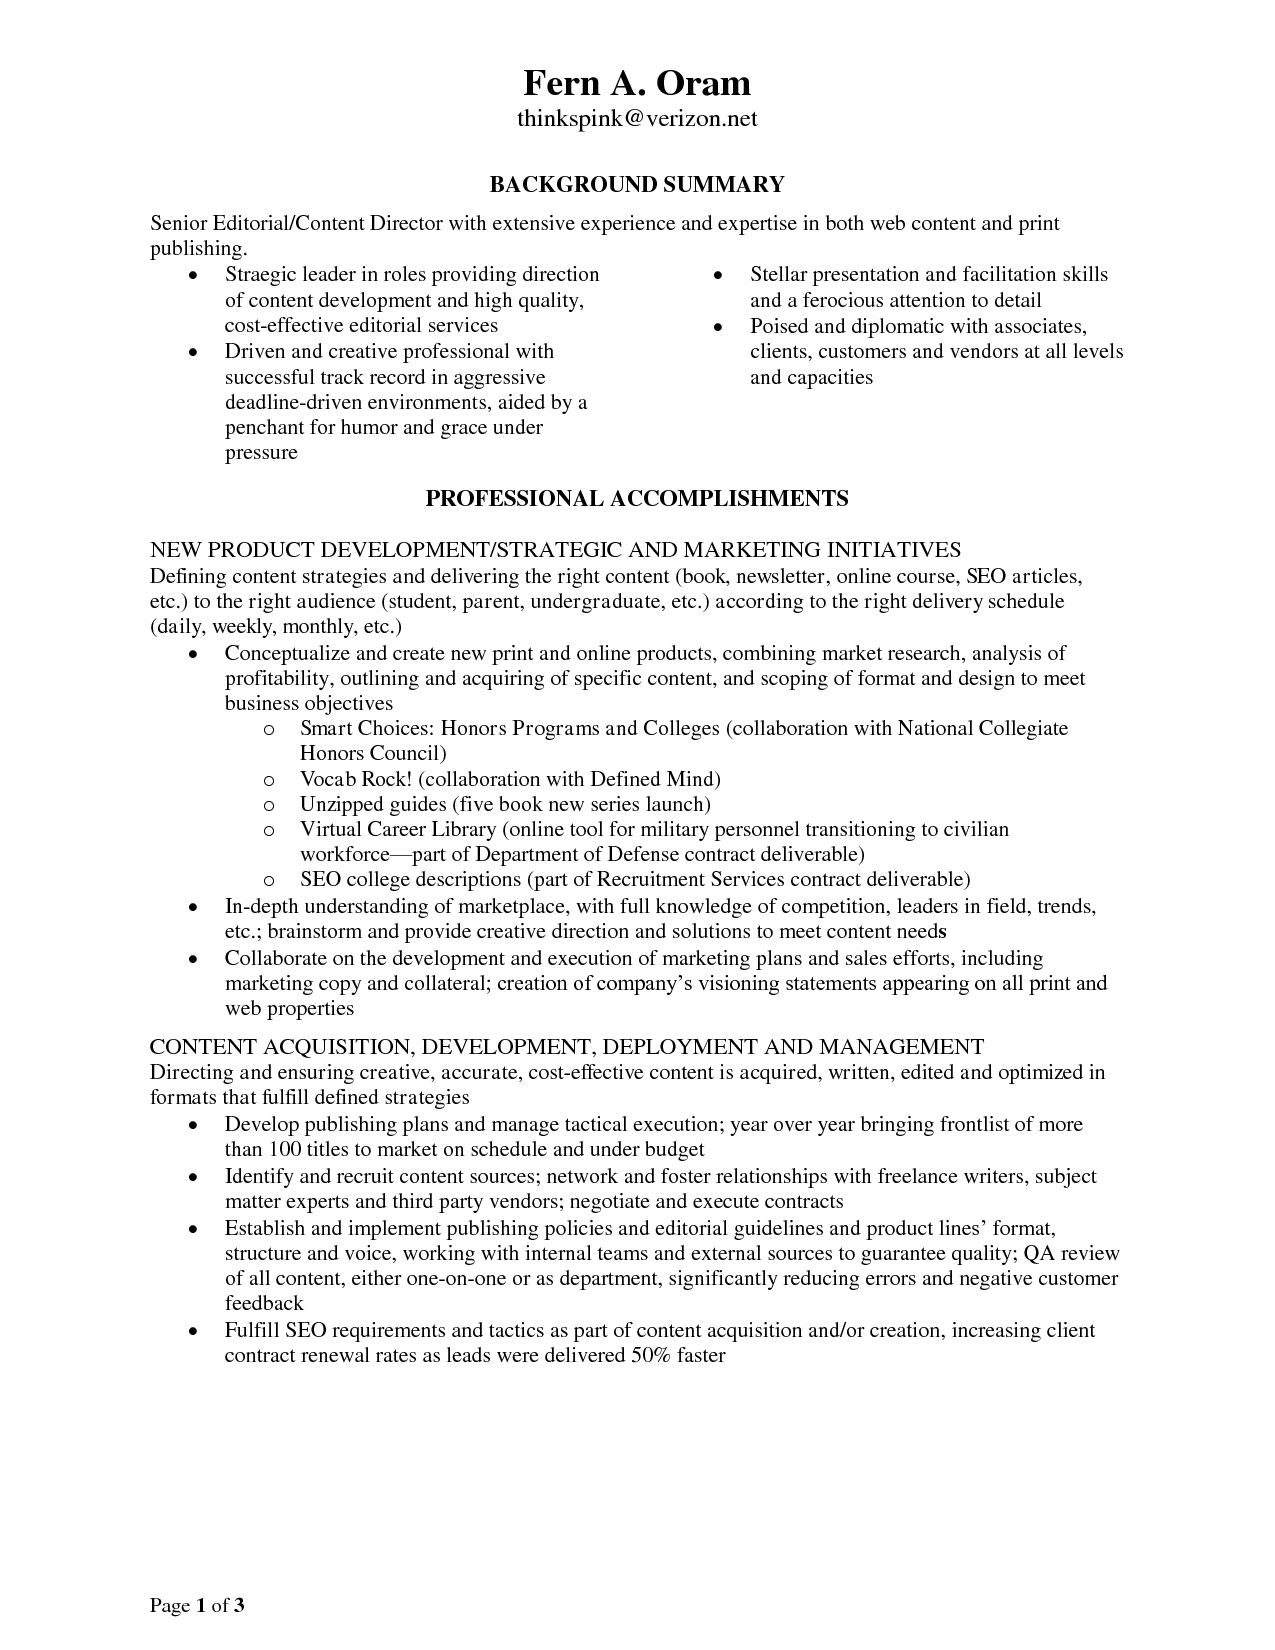 Resume Examples Monster Resumeexamples